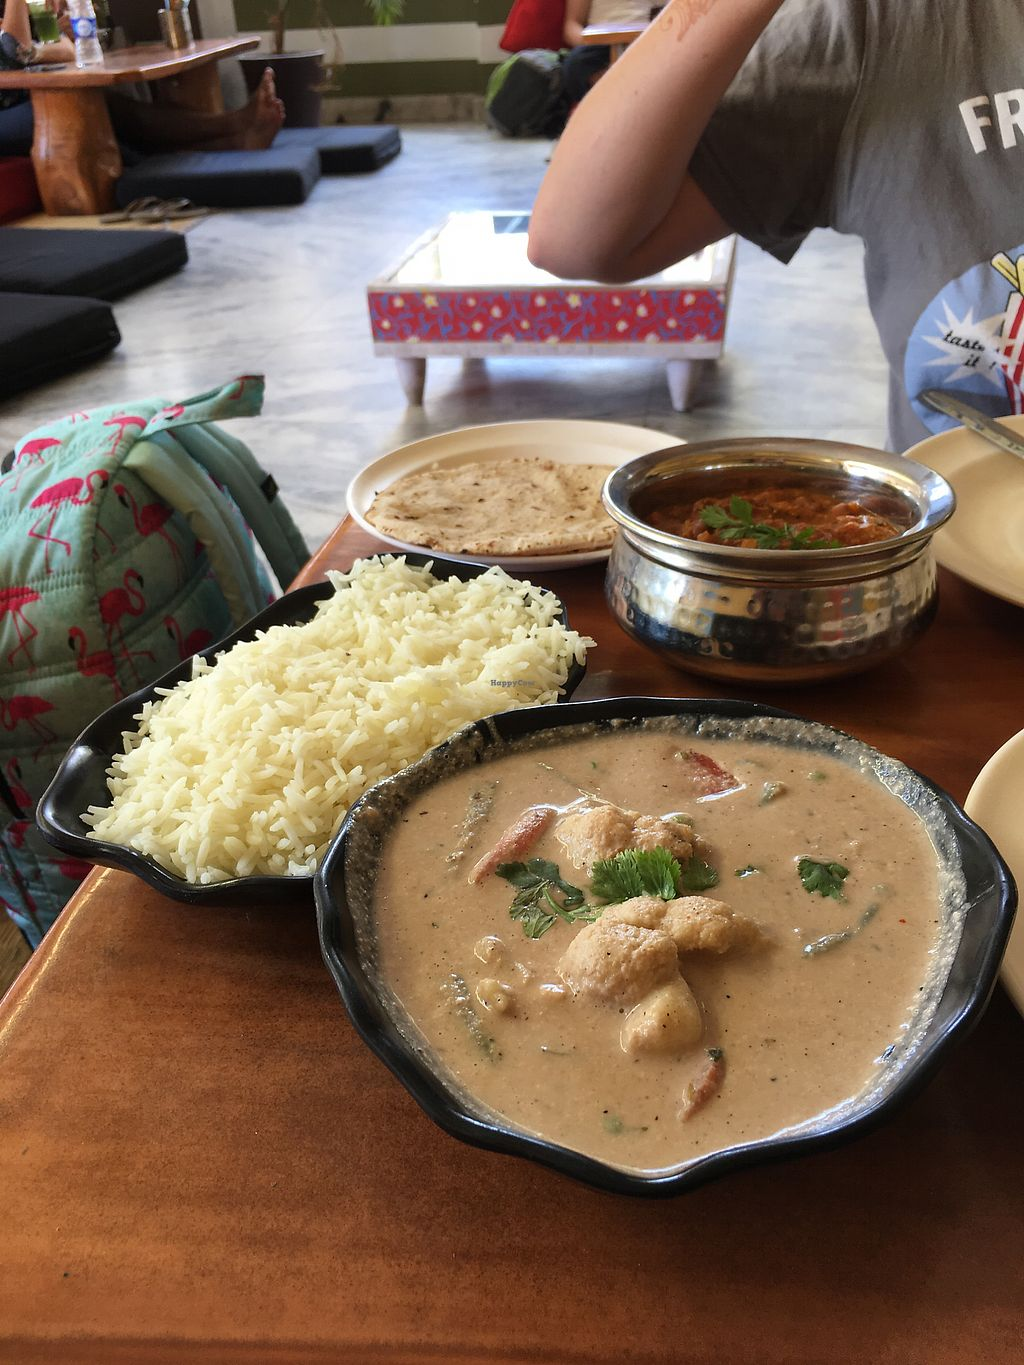 """Photo of Millets of Mewar  by <a href=""""/members/profile/CamilaSilvaL"""">CamilaSilvaL</a> <br/>Kidney bean curry (forgot the name) and a really tasteless peanut stew (darker the better) <br/> March 6, 2018  - <a href='/contact/abuse/image/30697/367490'>Report</a>"""